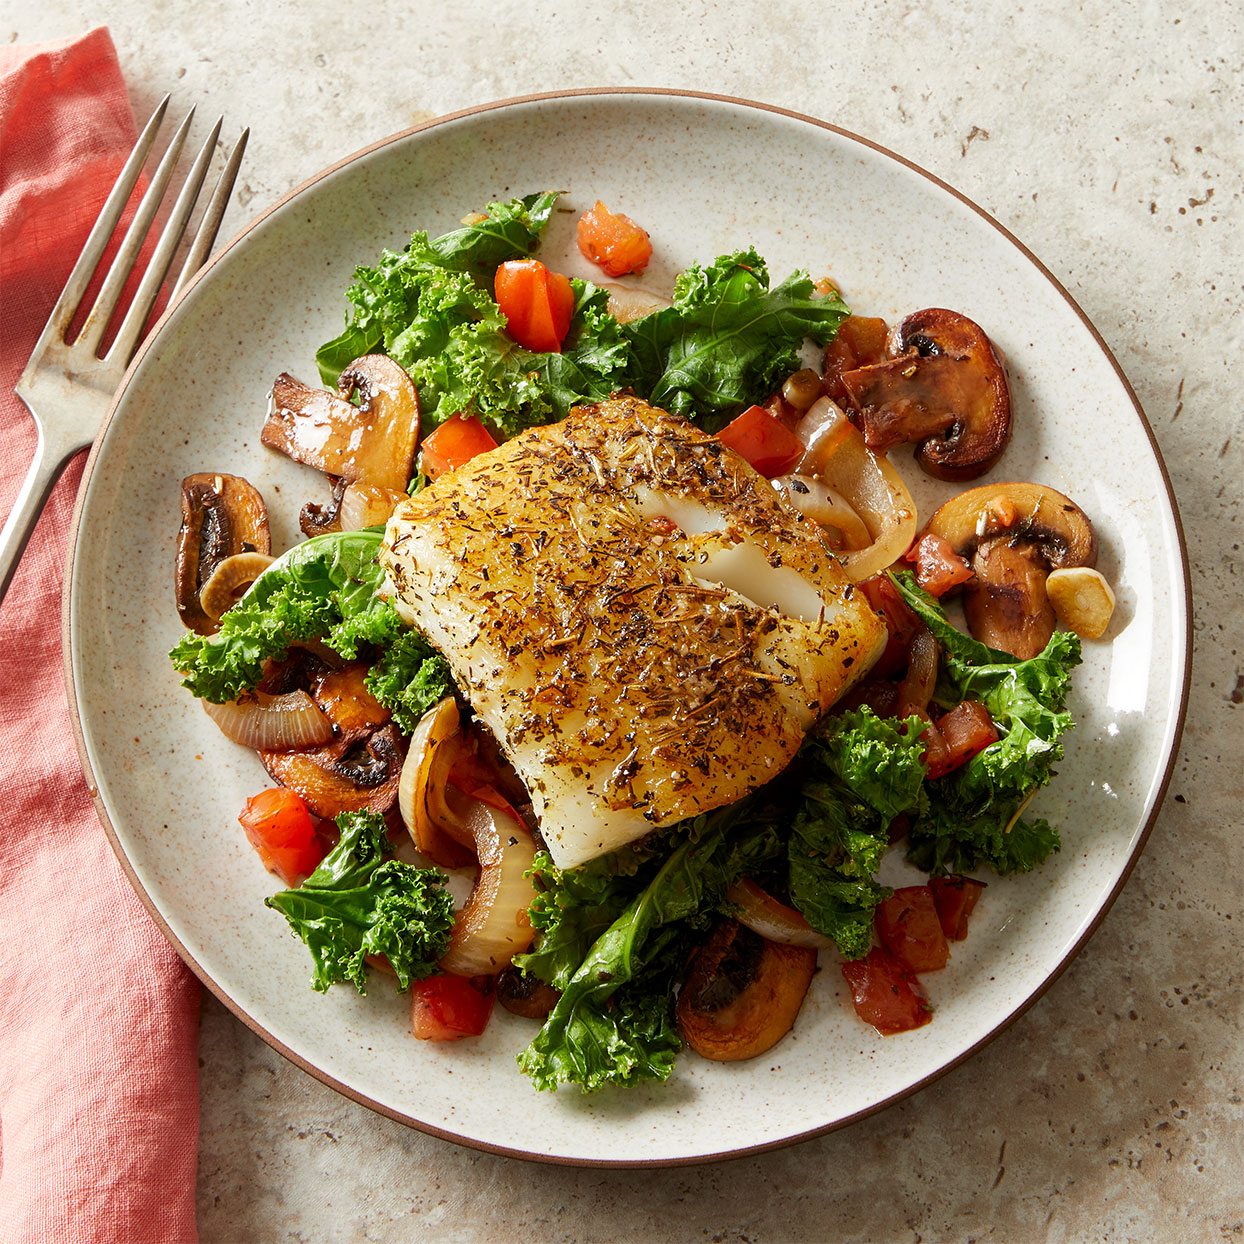 This Mediterranean fish recipe makes a tasty and healthful weeknight meal. Serve with wild rice or roasted potatoes. Source: Diabetic Living Magazine, Spring 2020